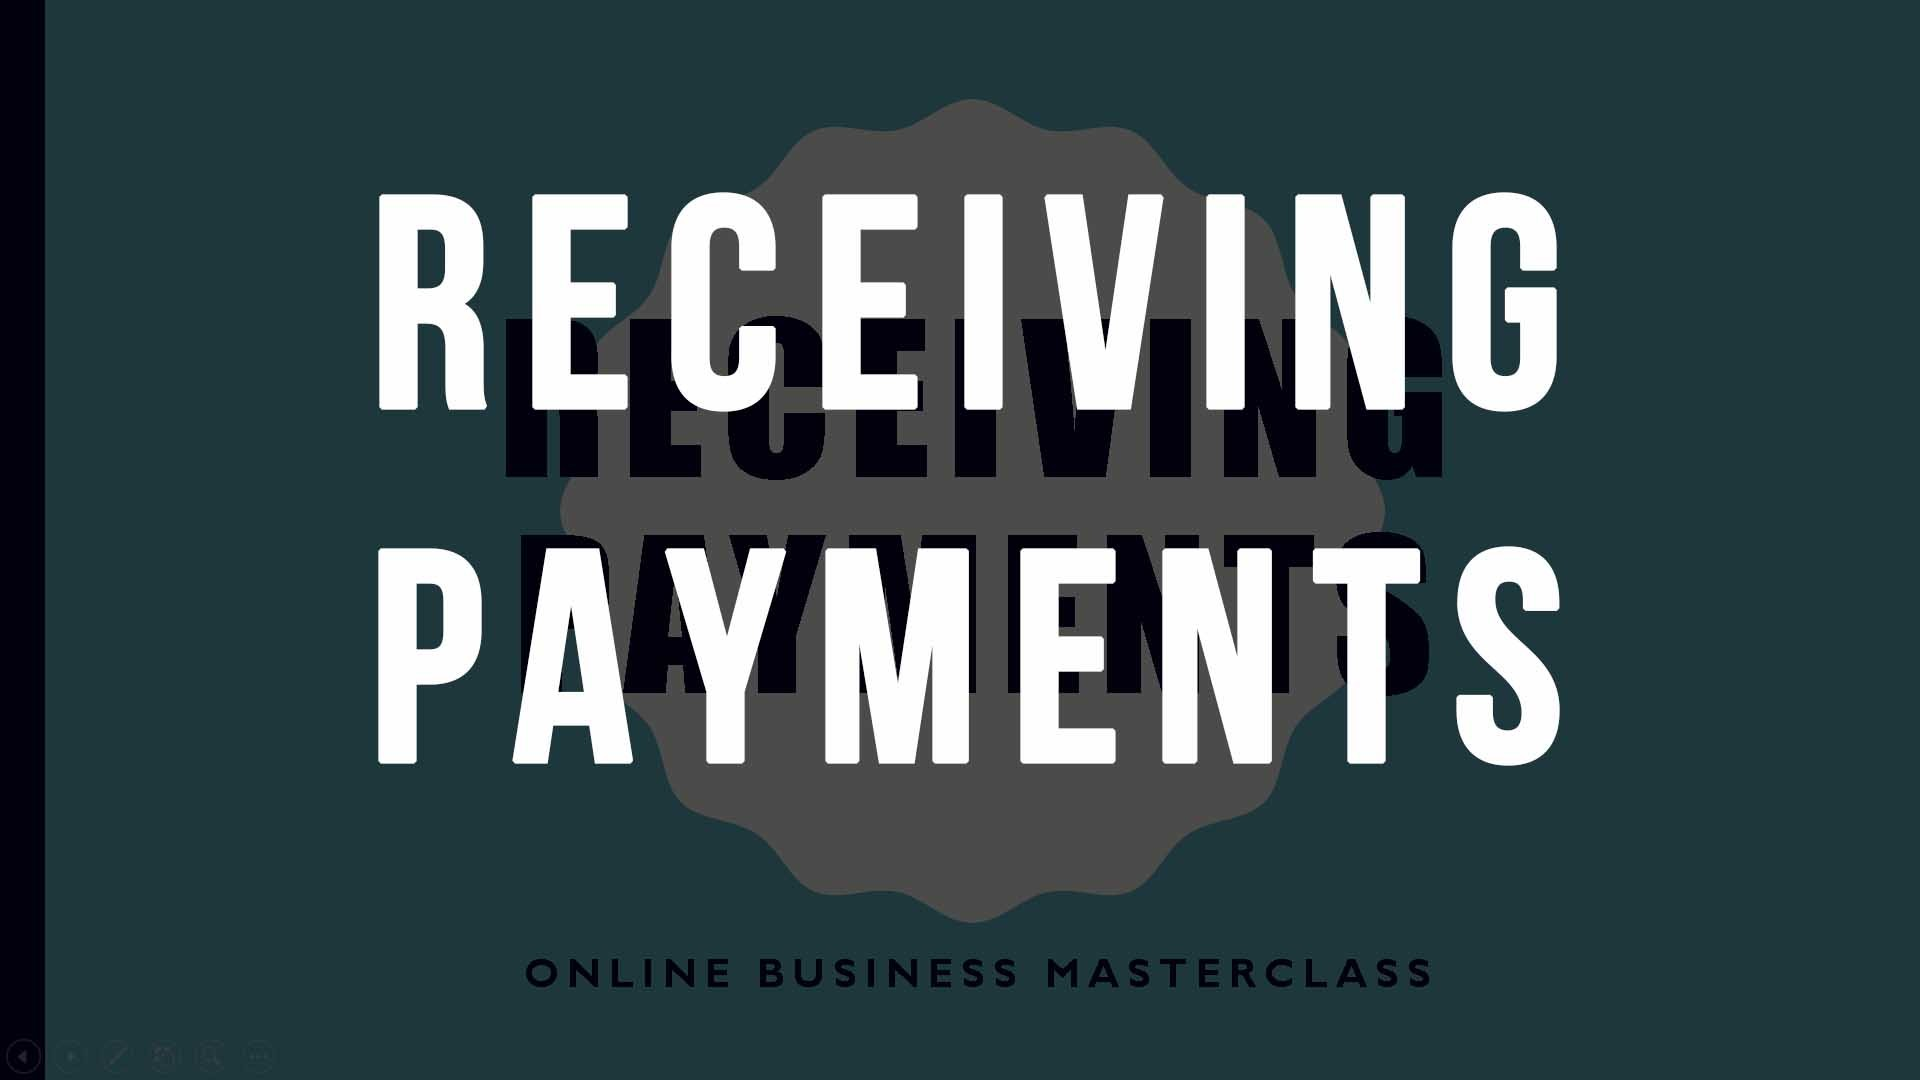 RECEIVING PAYMENTS FROM CUSTOMERS